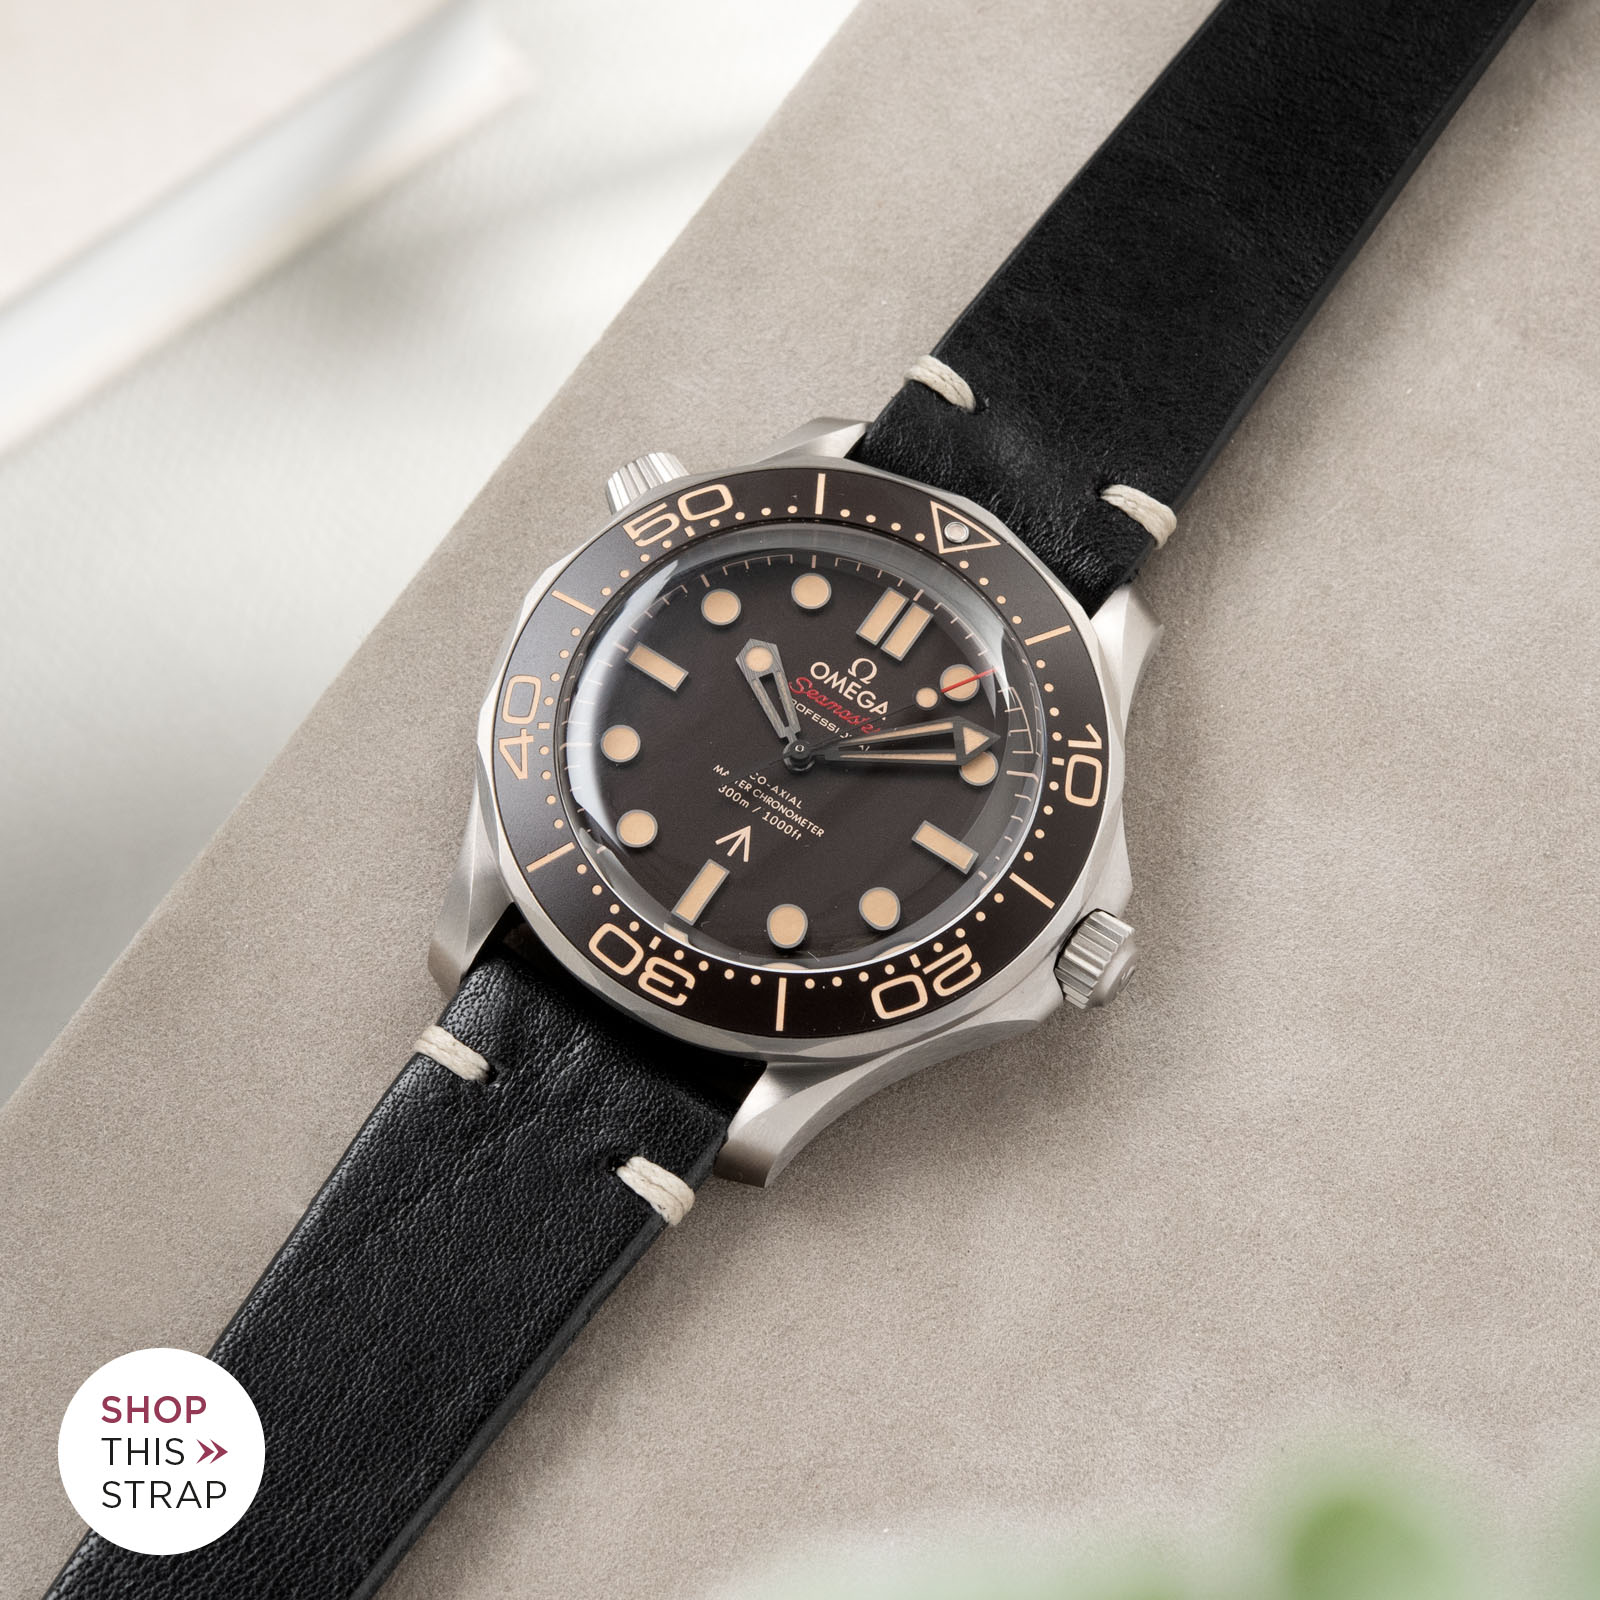 Bulang and Sons_Strapguide_Omega Seamaster_Black Leather Watch Strap